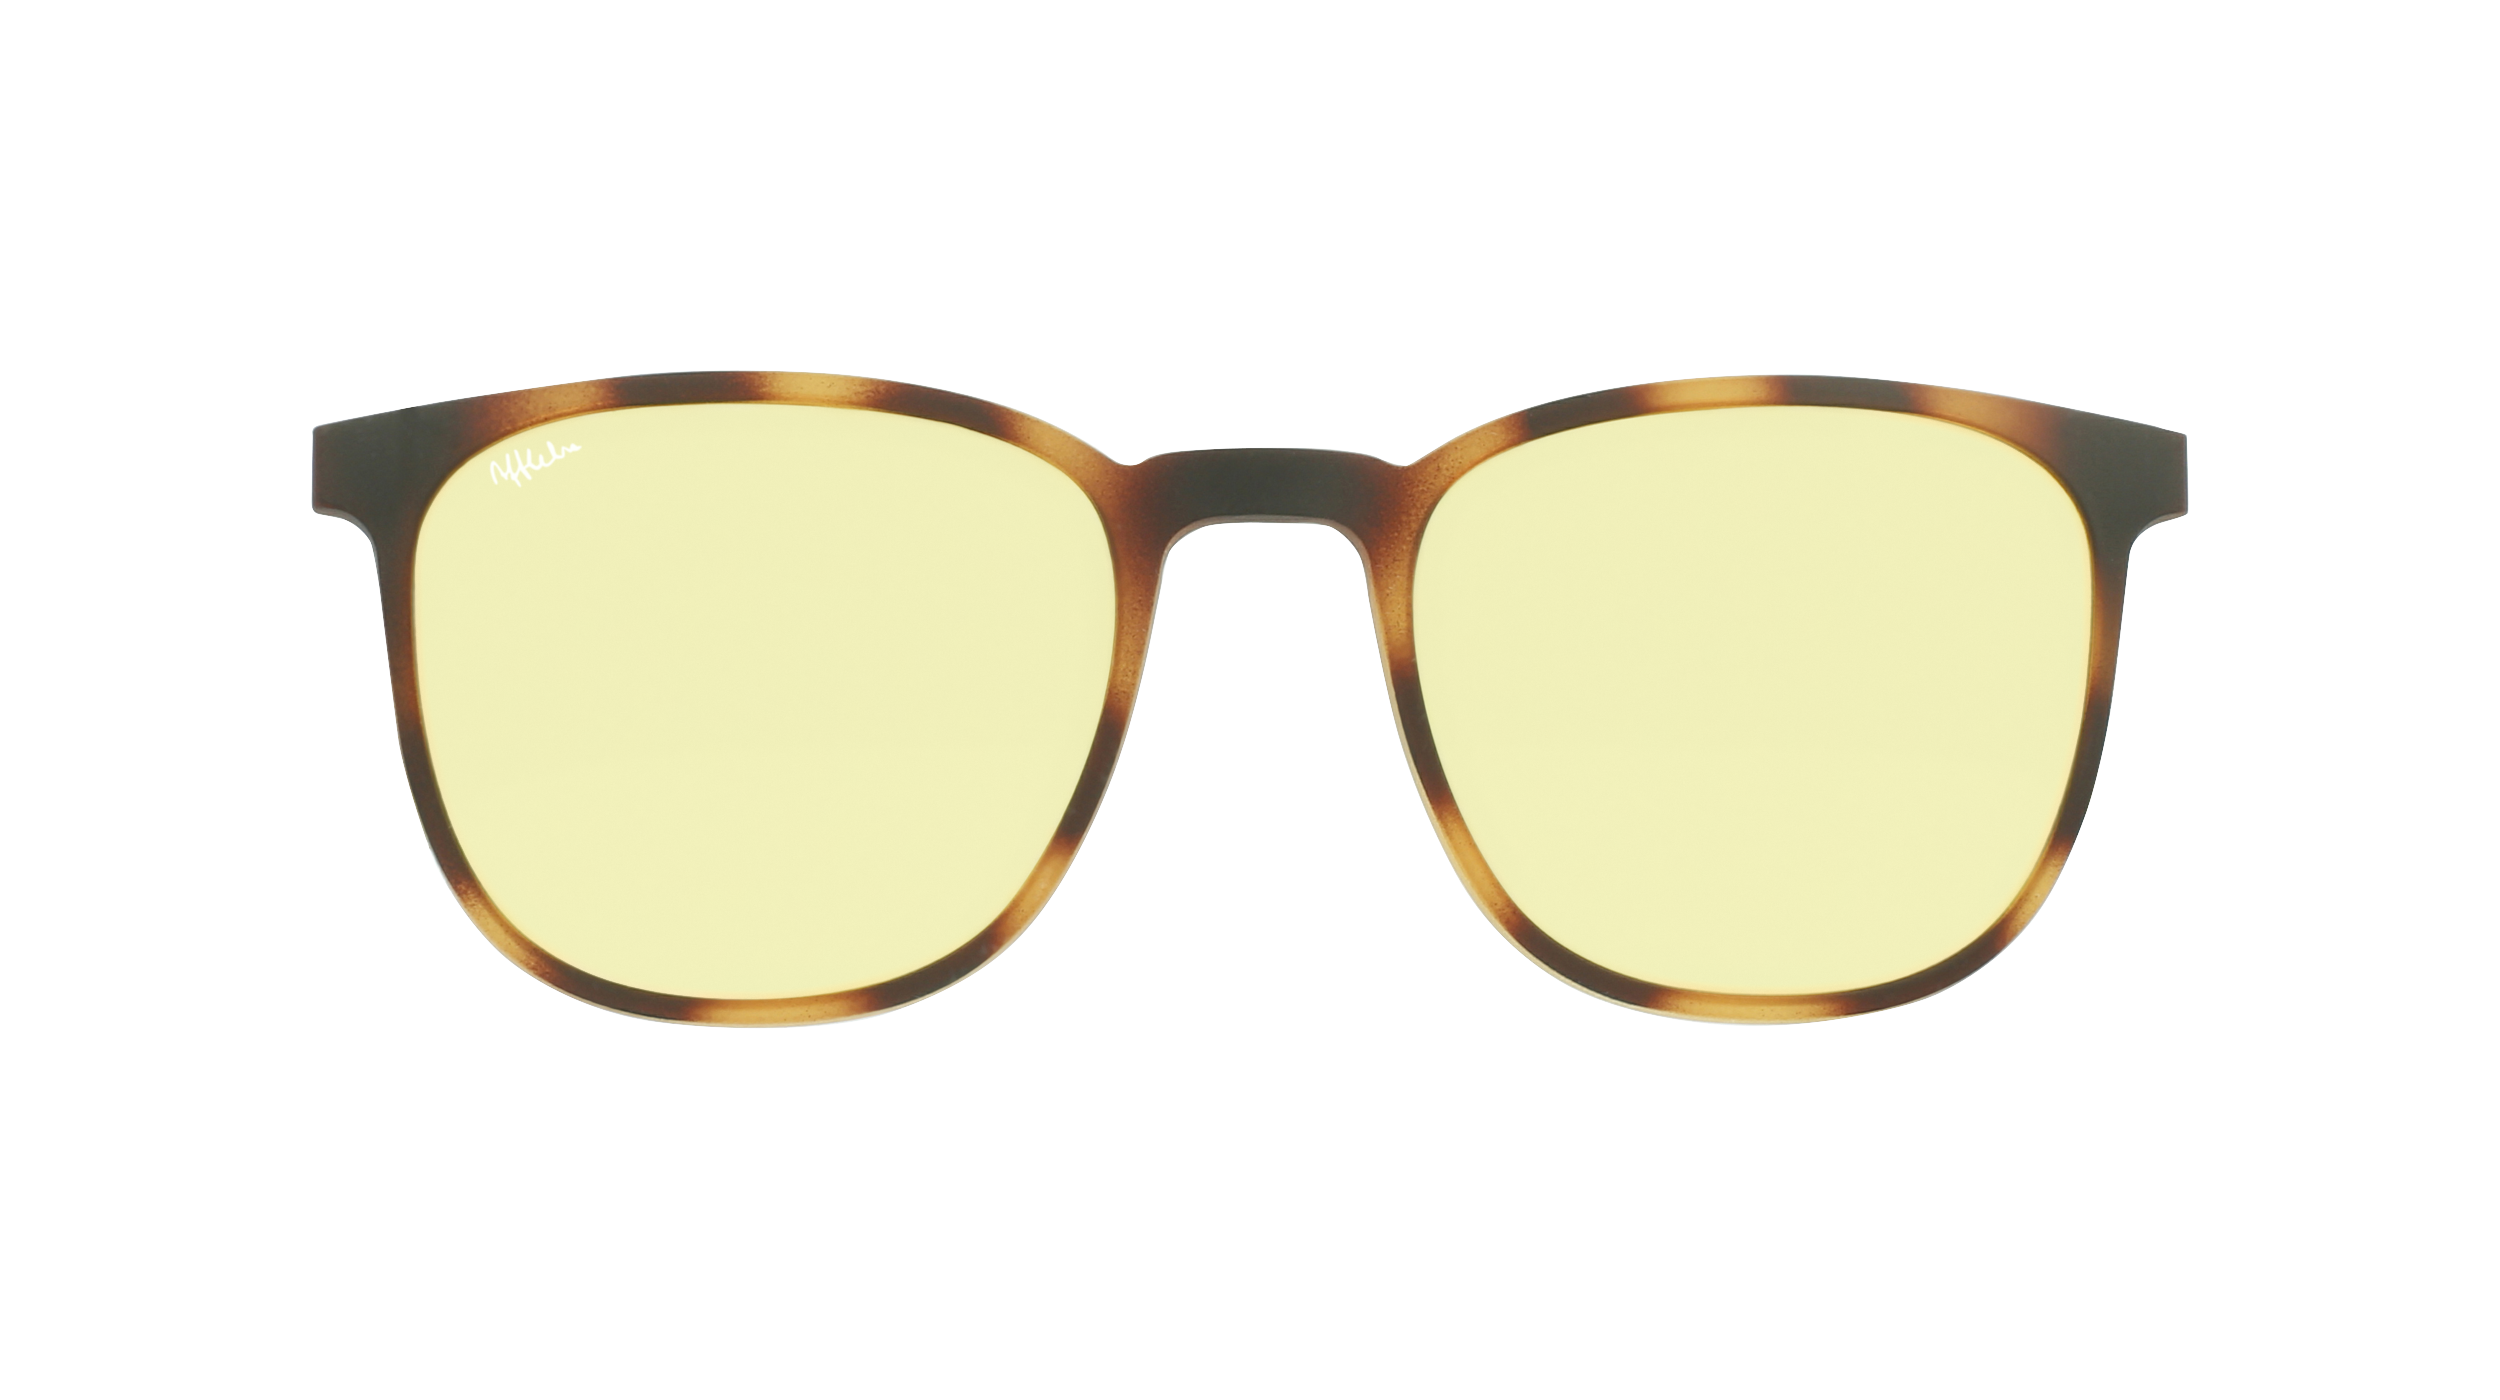 afflelou/france/products/smart_clip/clips_glasses/07630036457382.png